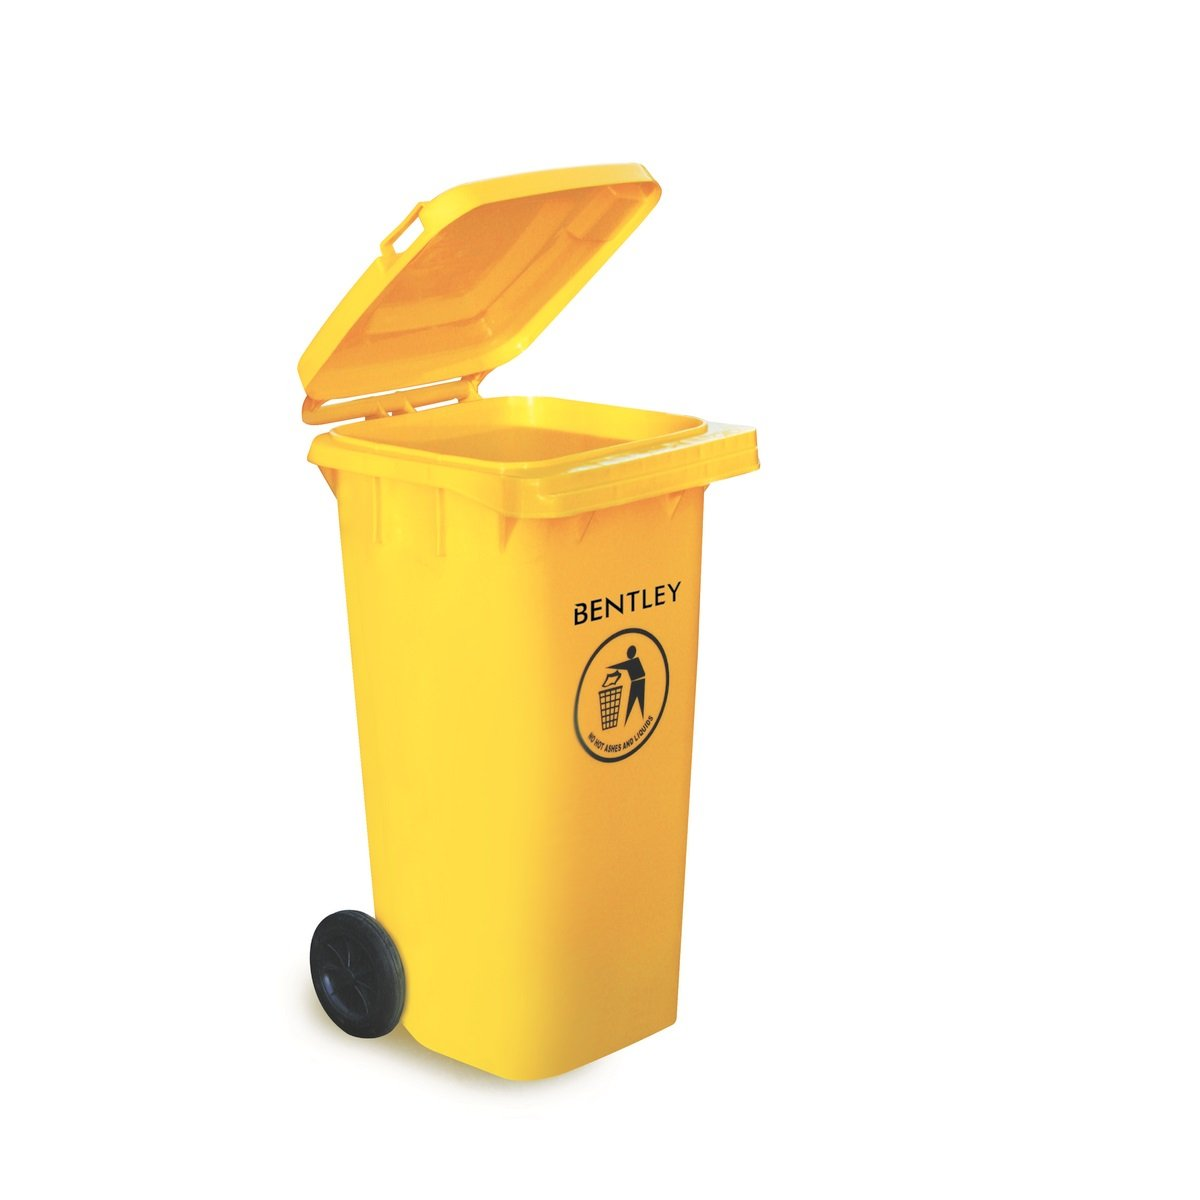 Charles Bentley Outdoor Household Waste Medium Rubbish 120 Litre Wheelie Bin